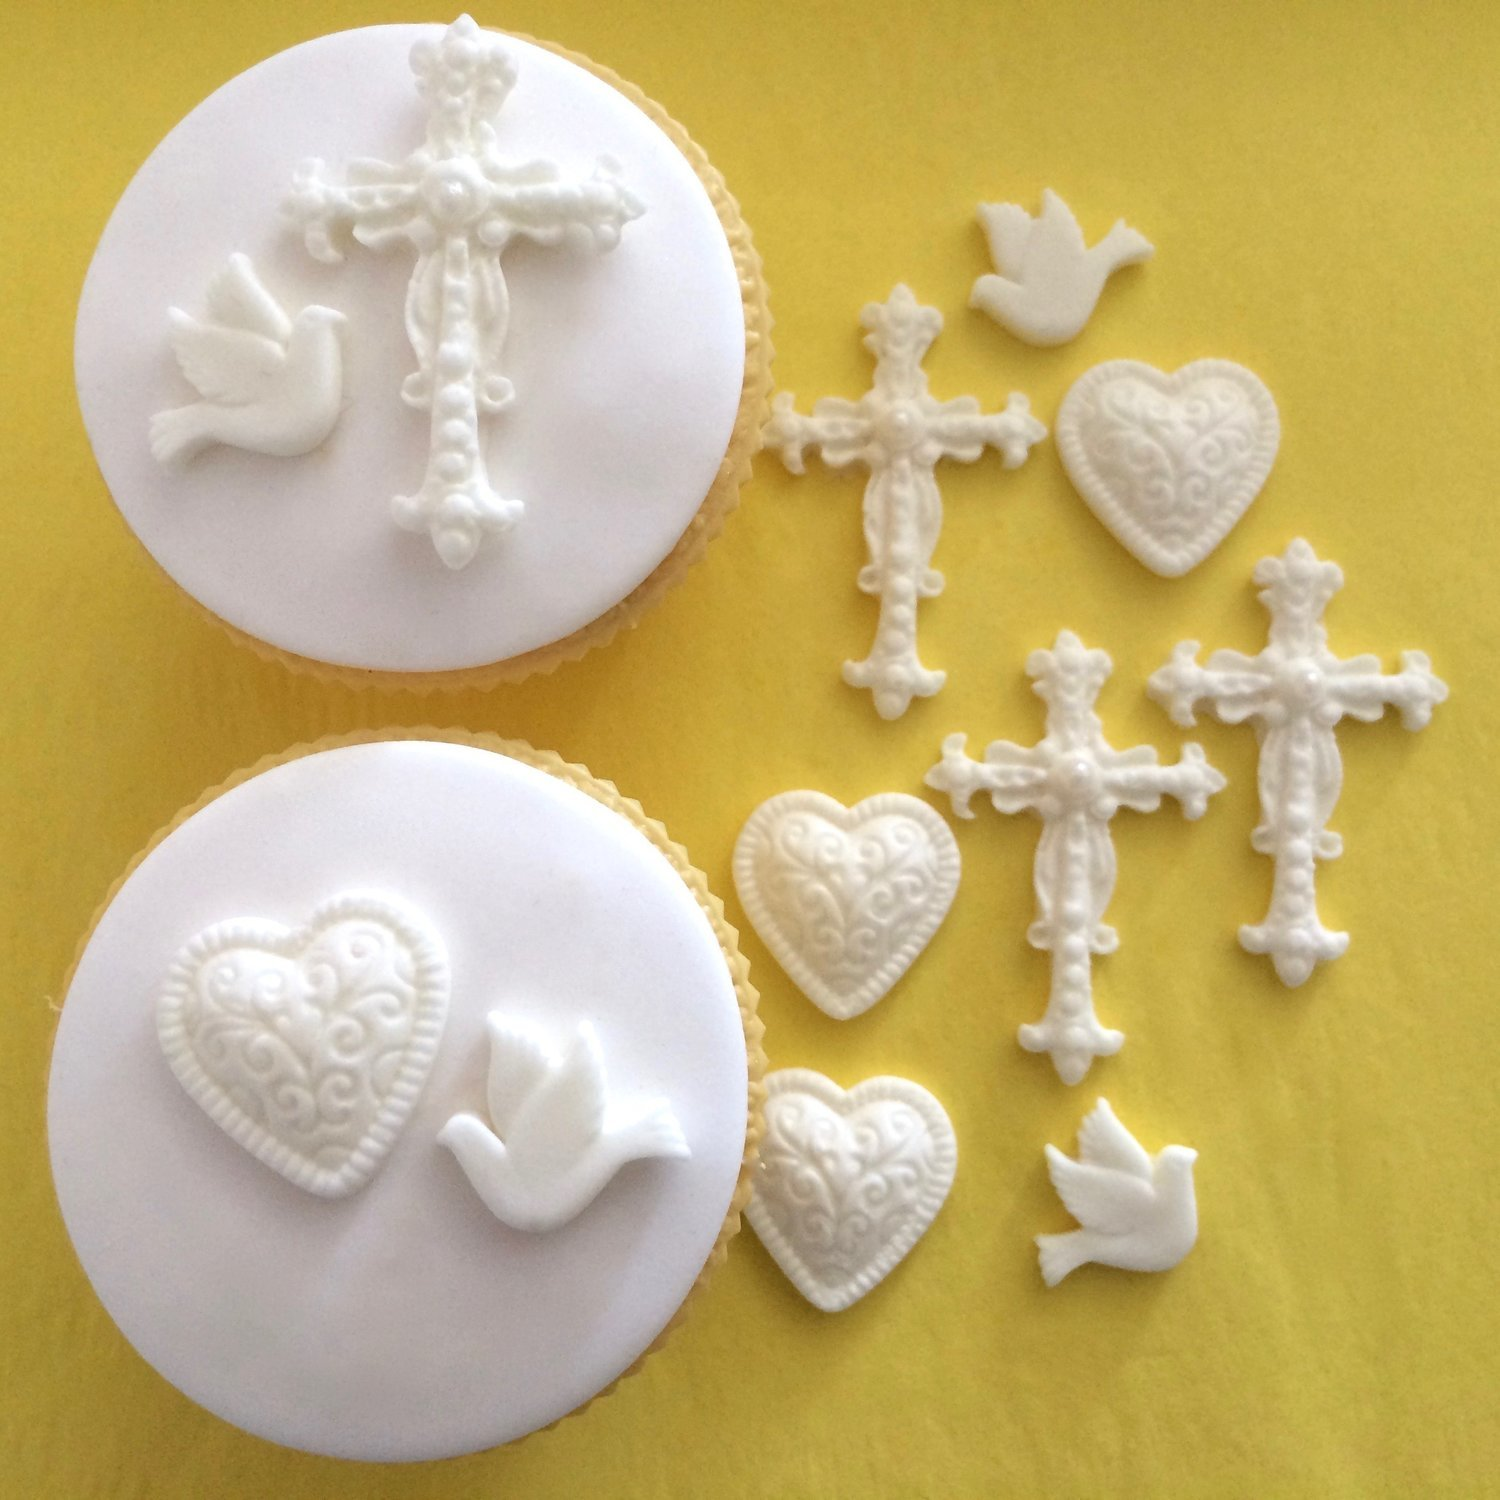 Christening Crosses, Hearts & Doves